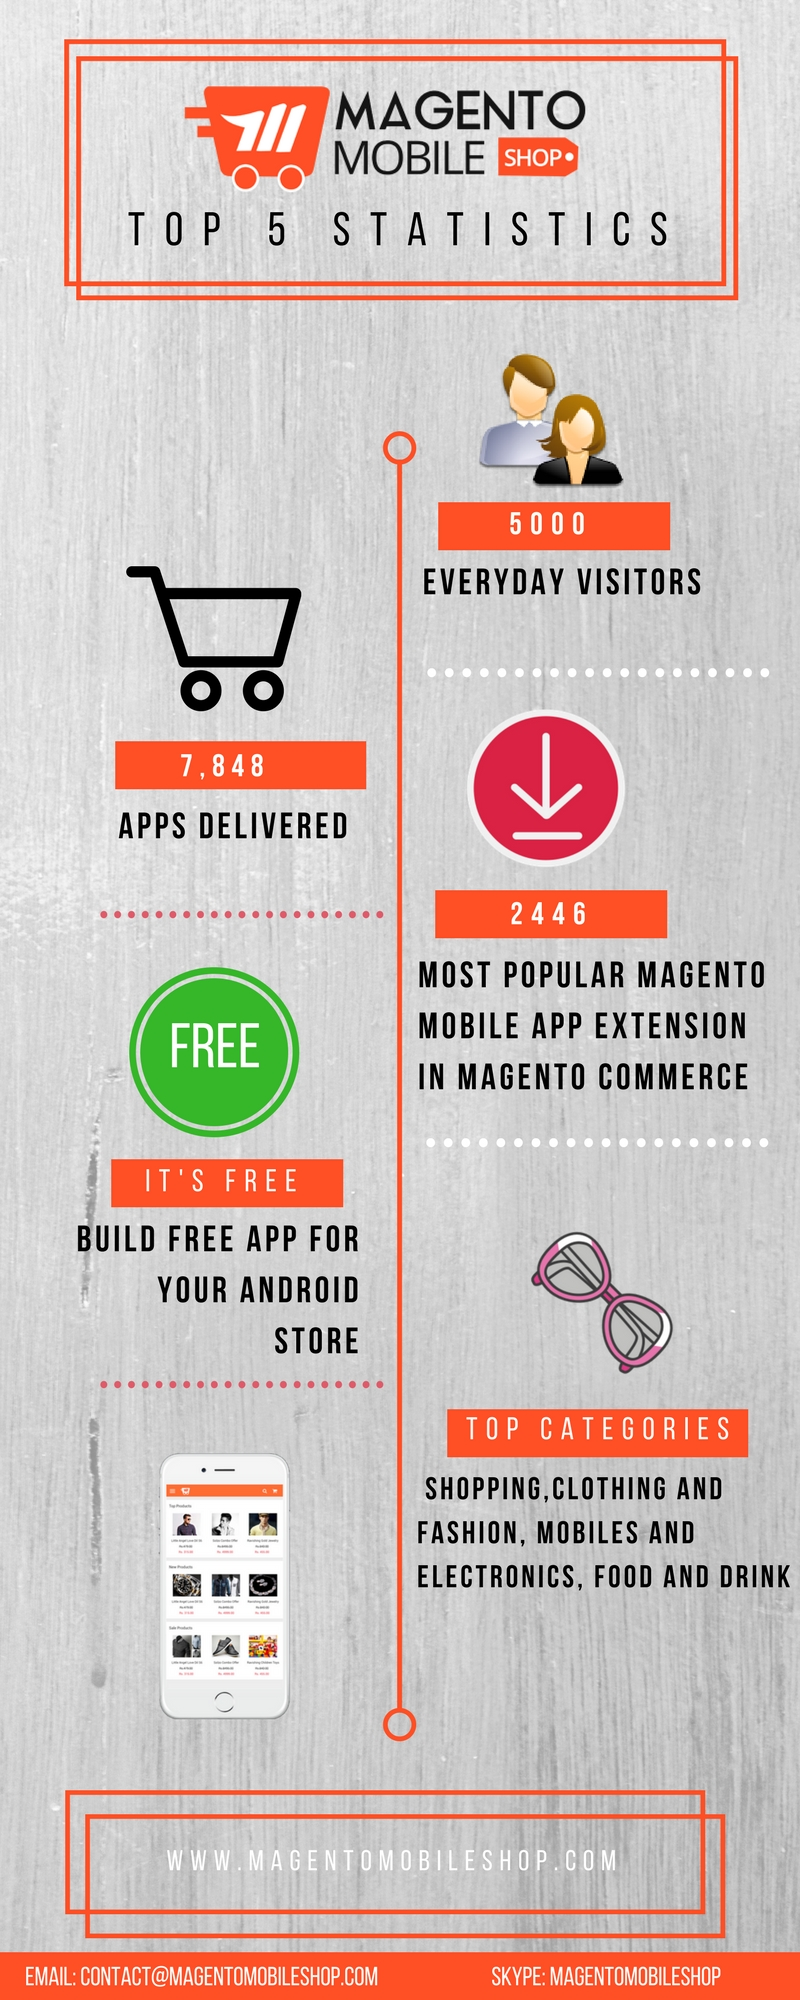 magento mobile shop top statistics